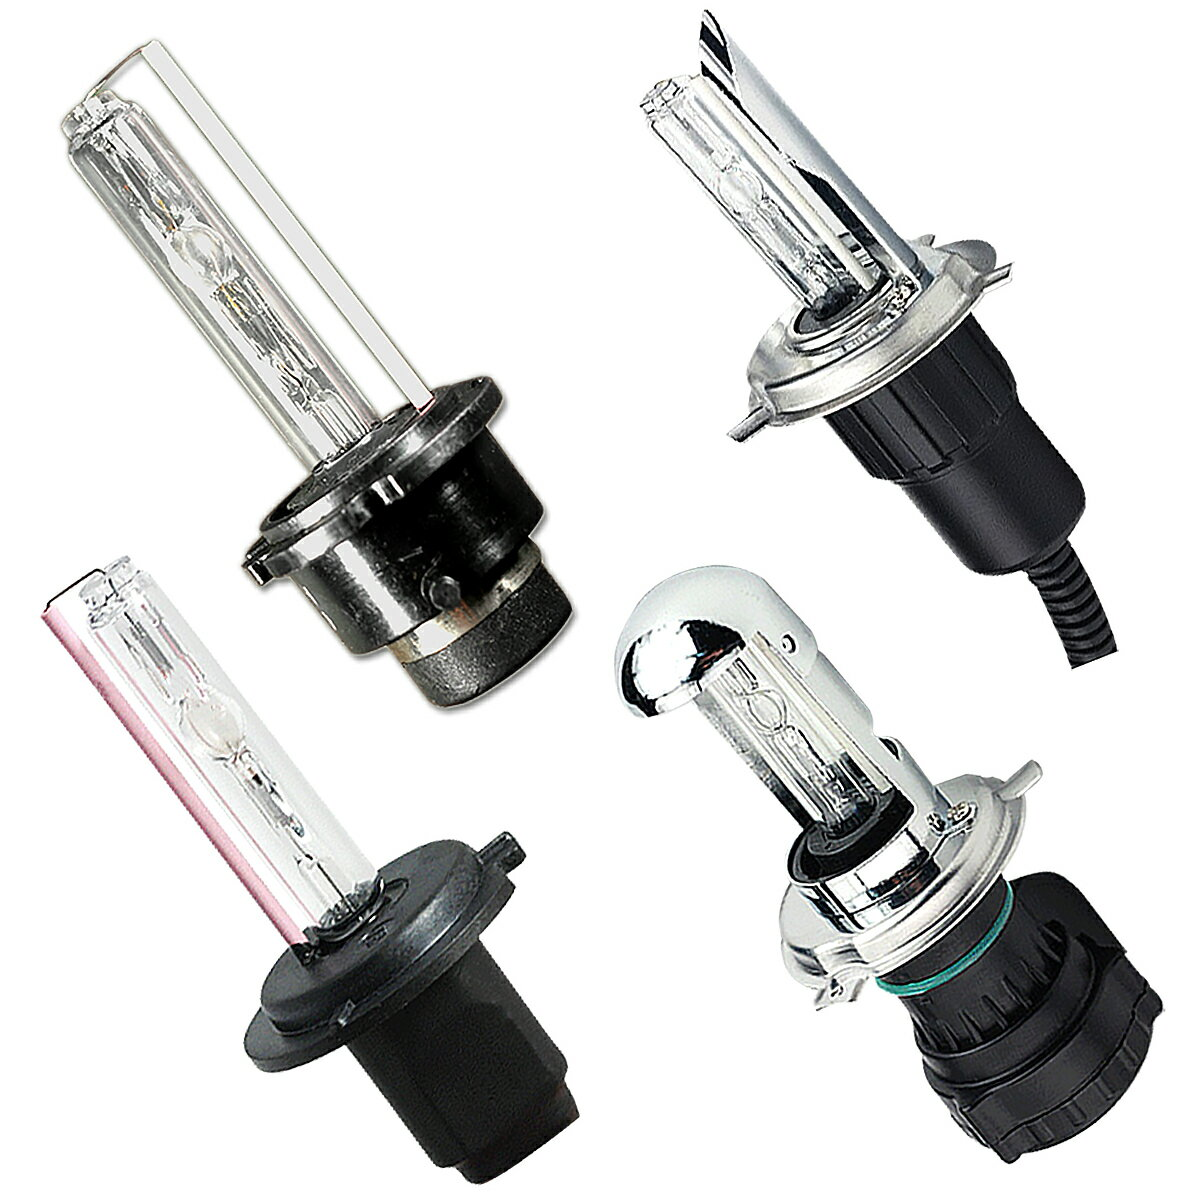 HID スズキ SUZUKI エスクード TD62W ヘッド 2個入り [35W 55W ナノテック採用 完全防水 3000K 4300K 6000K 8000K 12000K HIDキット リレーレス 選択可][H4 Hi/Lo HIDキット] 代引不可 宅配便送料無料 1年保証 K&M